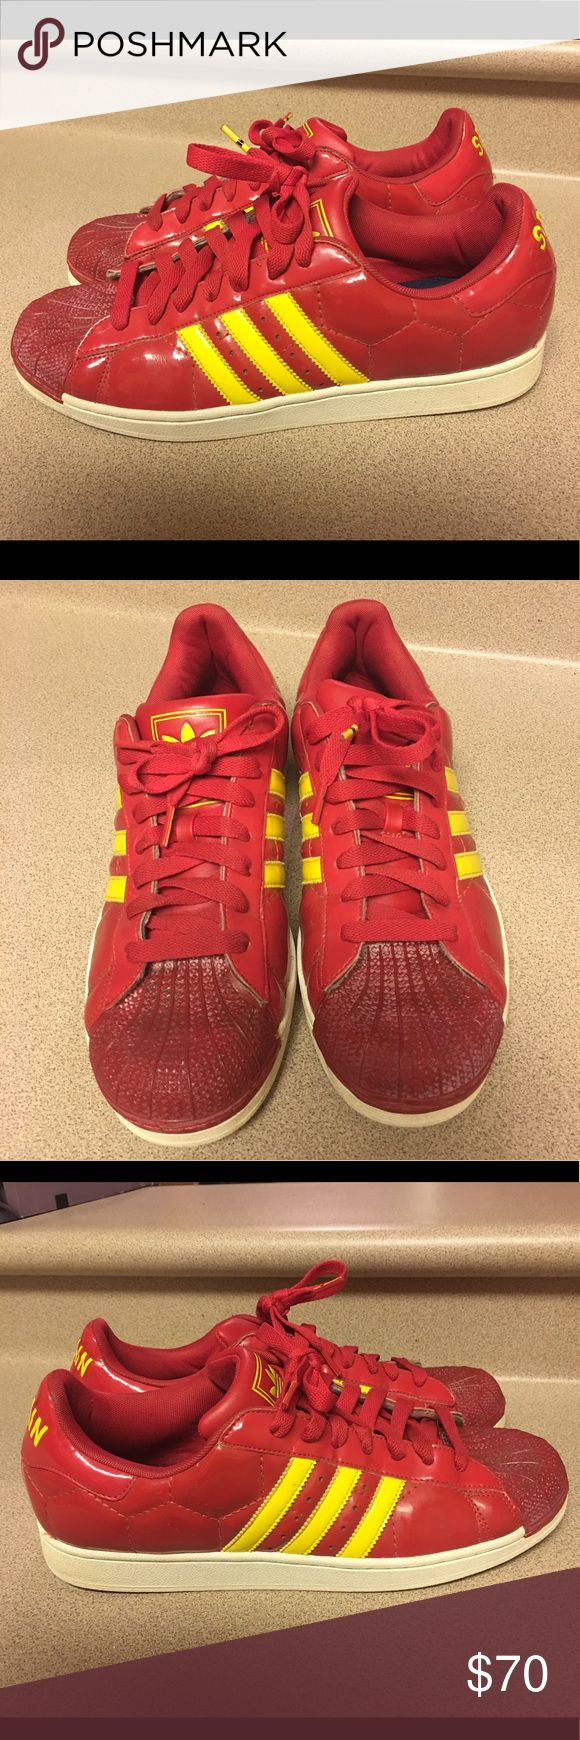 Adidas Superstar 2 World Cup Red/Yellow Men's 11.5 Pre-Owned Adidas Superstar 2 World Cup Red/Yellow Men's 11.5 Rare adidas Shoes Sneakers